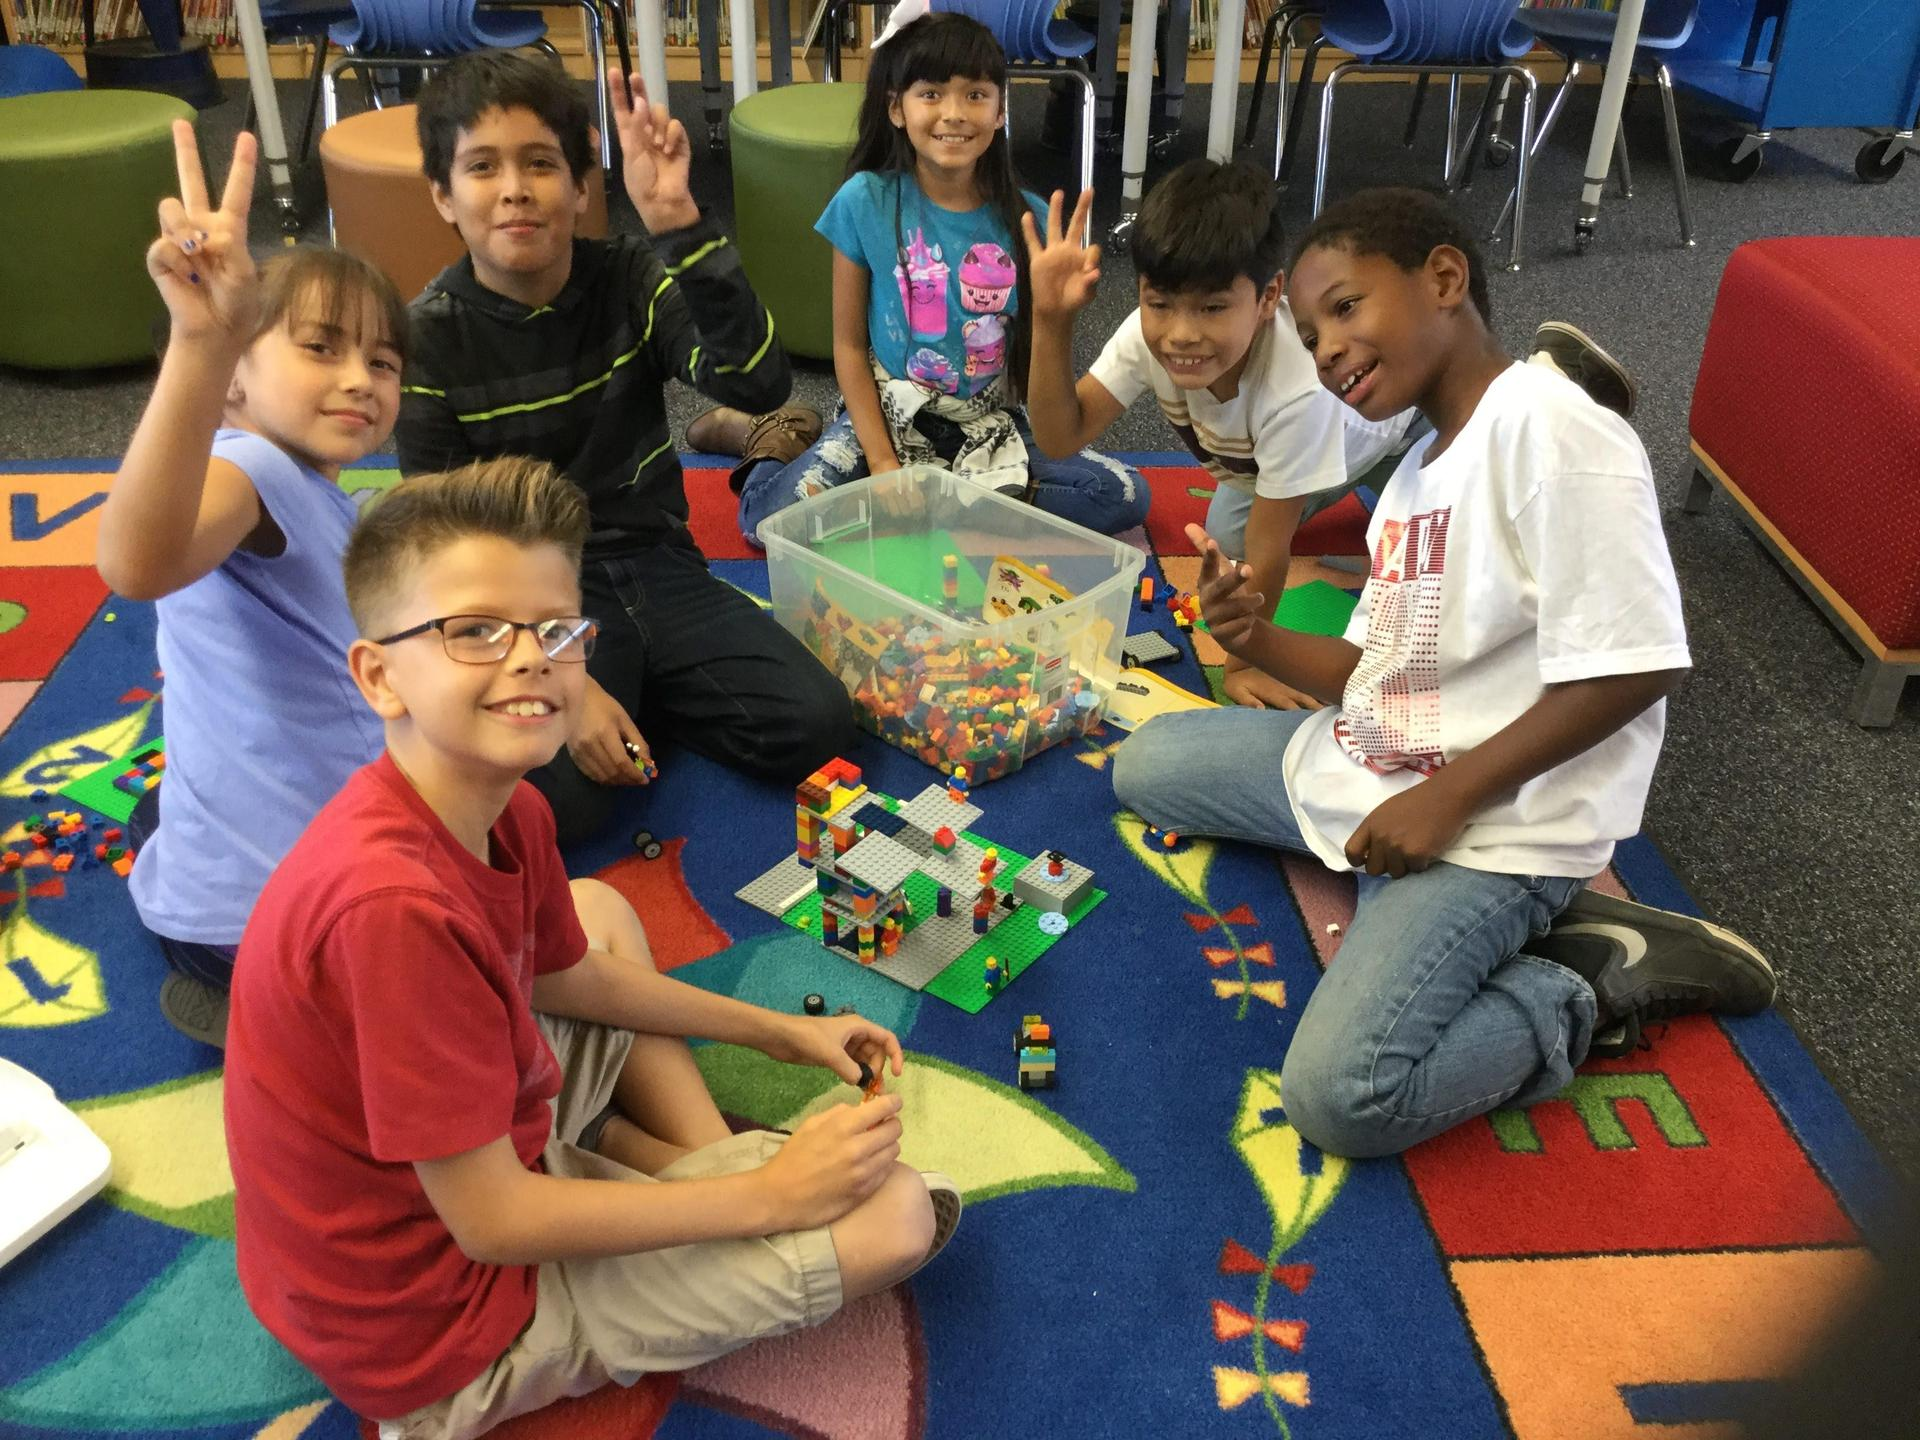 Students building with Legos